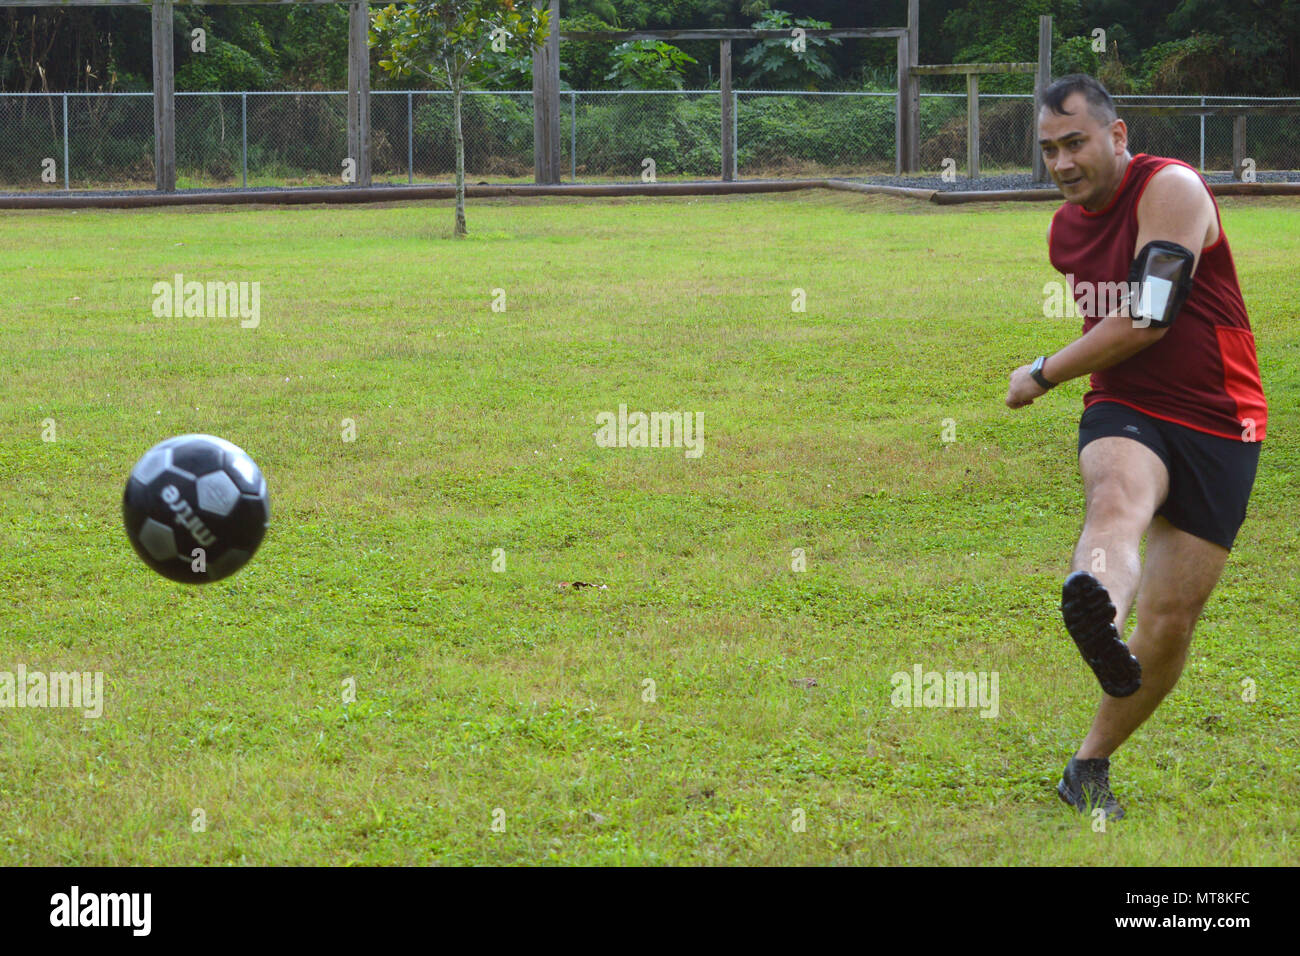 A Singapore Army Soldier Kicks A Soccer Ball During A Match During Tiger Balm 18 S Sports Day At The 298th Regiment Multi Functional Training Unit Mftu Regional Training Institute Rti Waimanalo Hawaii On